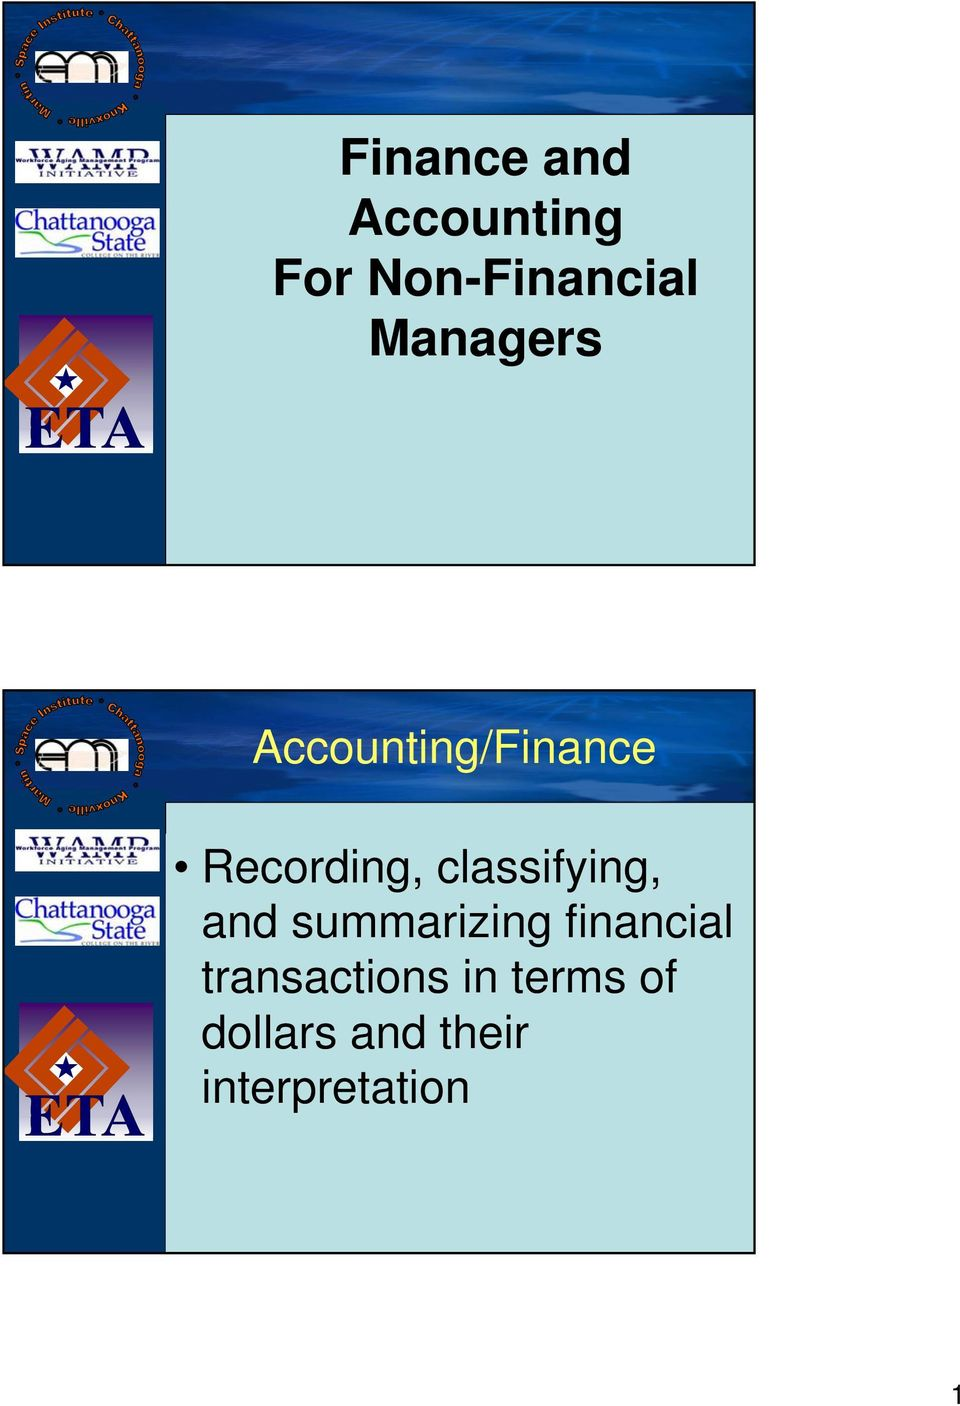 classifying, and summarizing financial